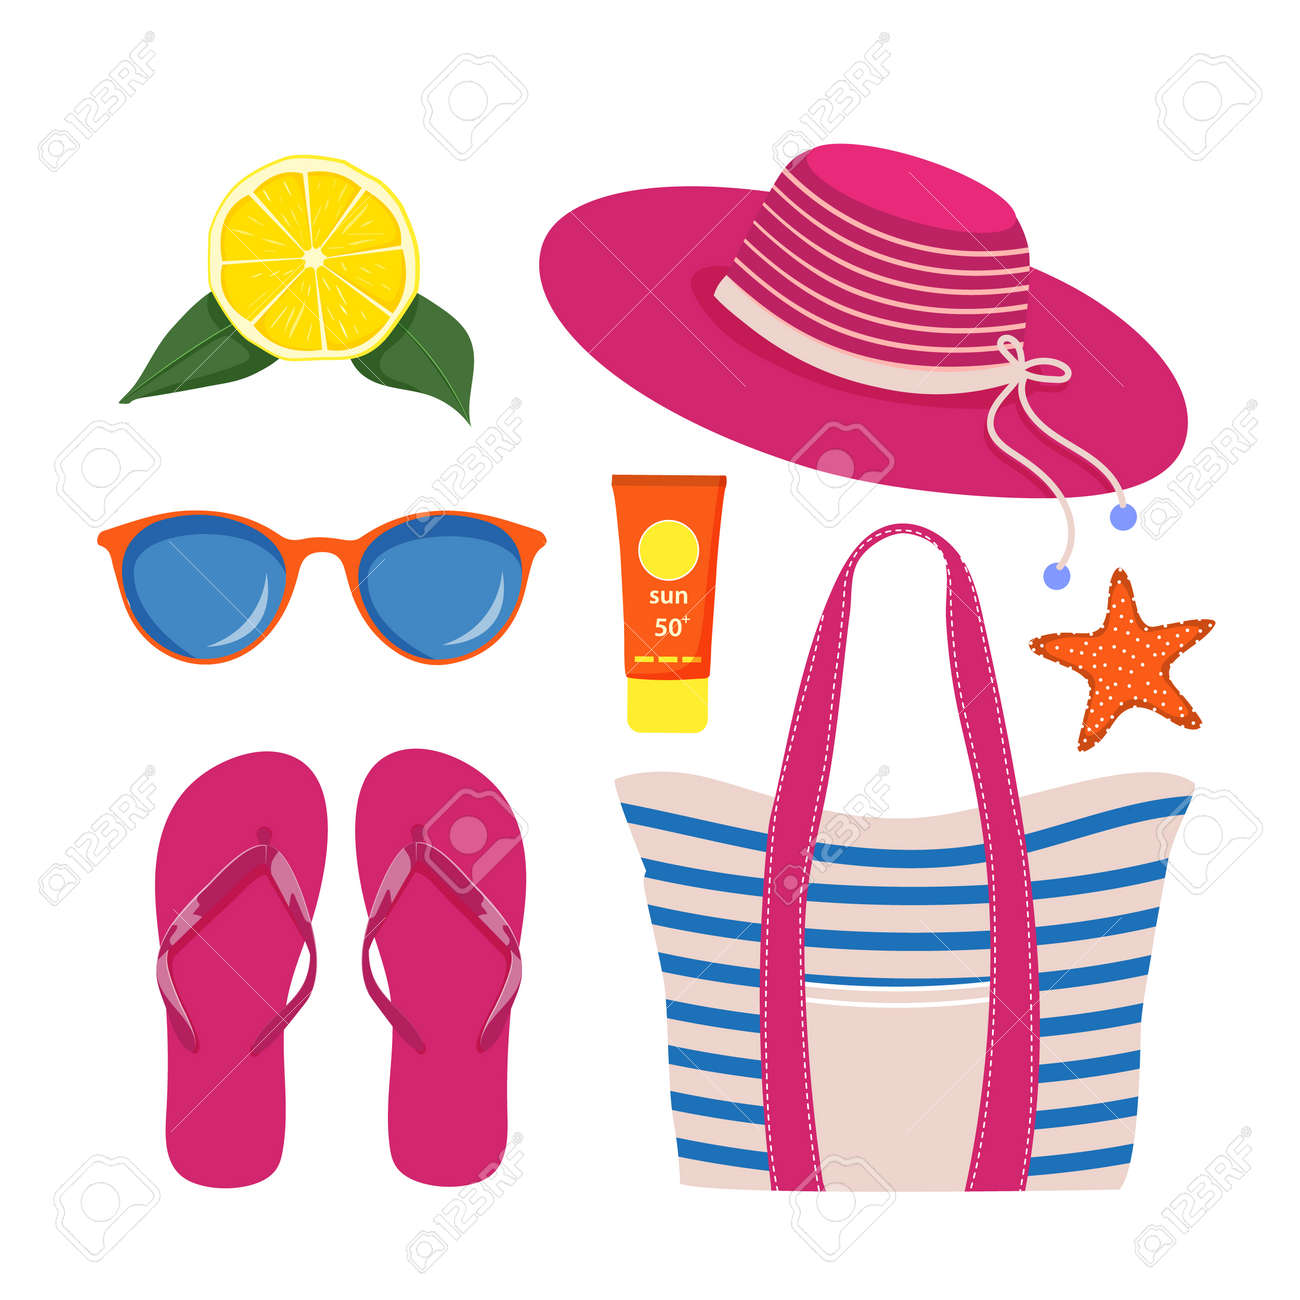 Set of beach accessories on white background - 168765965